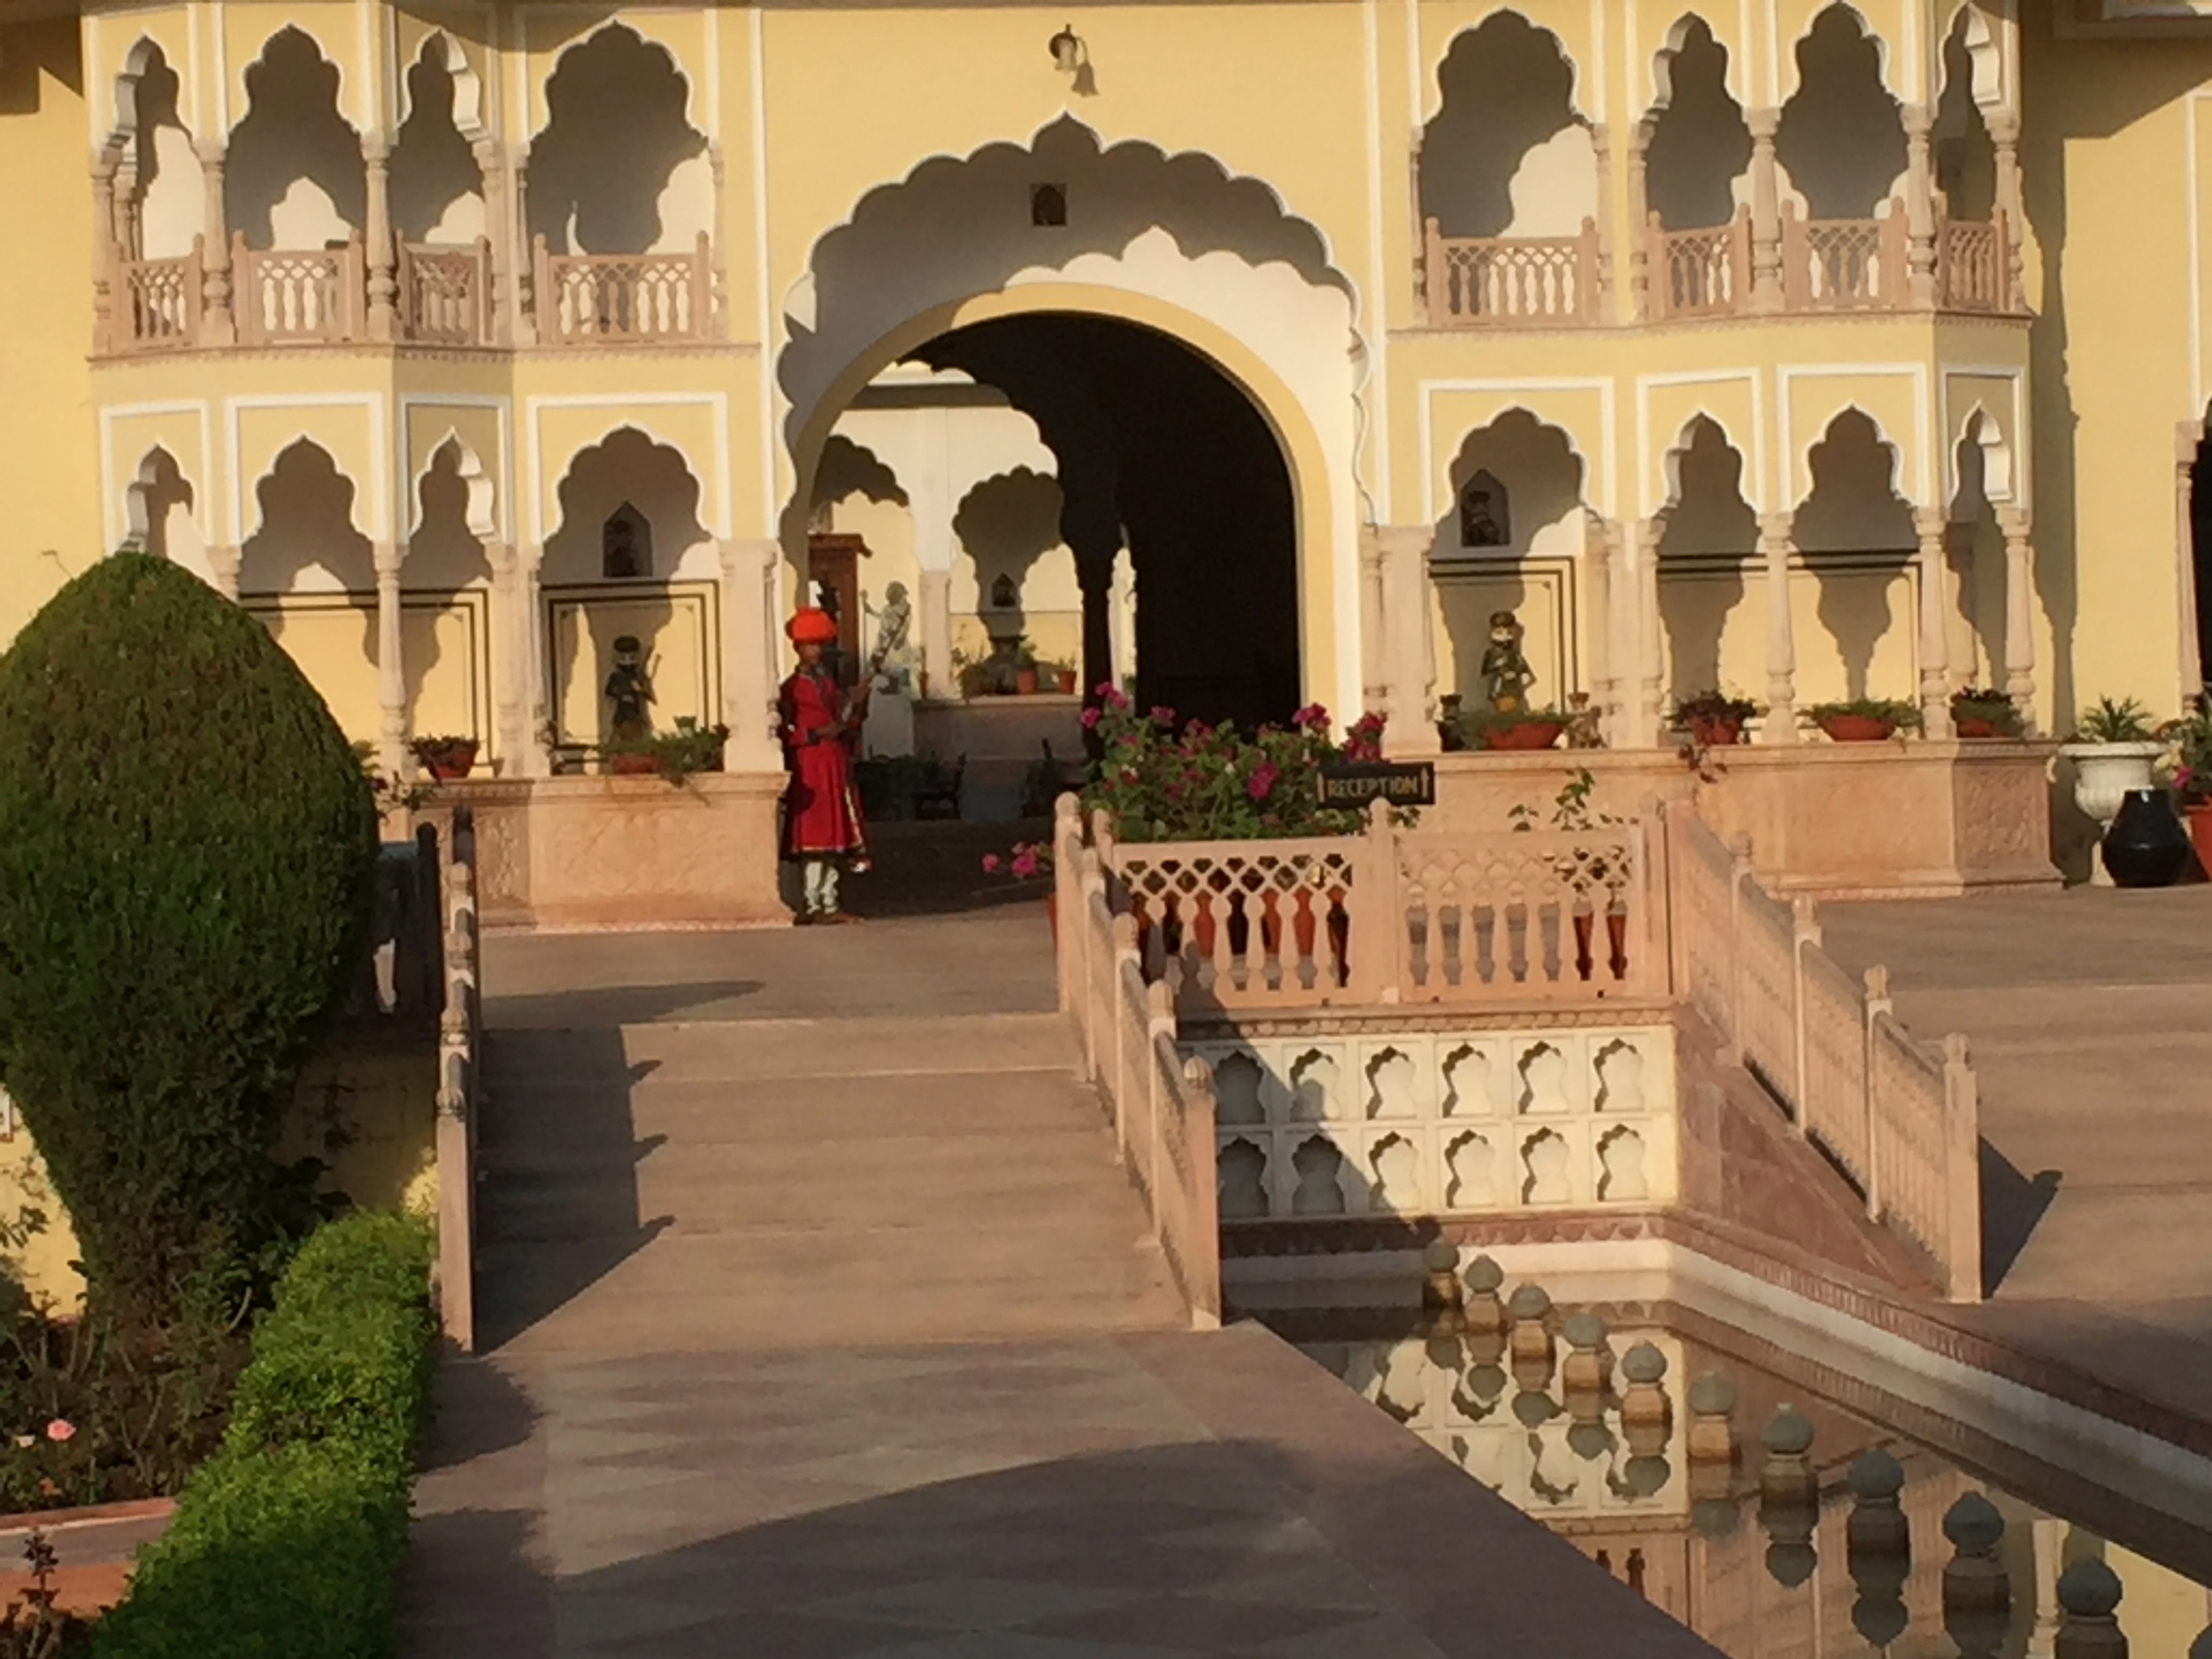 Entrance to the White Palace Hotel, near Rathambore National Park, a tiger sanctuary.